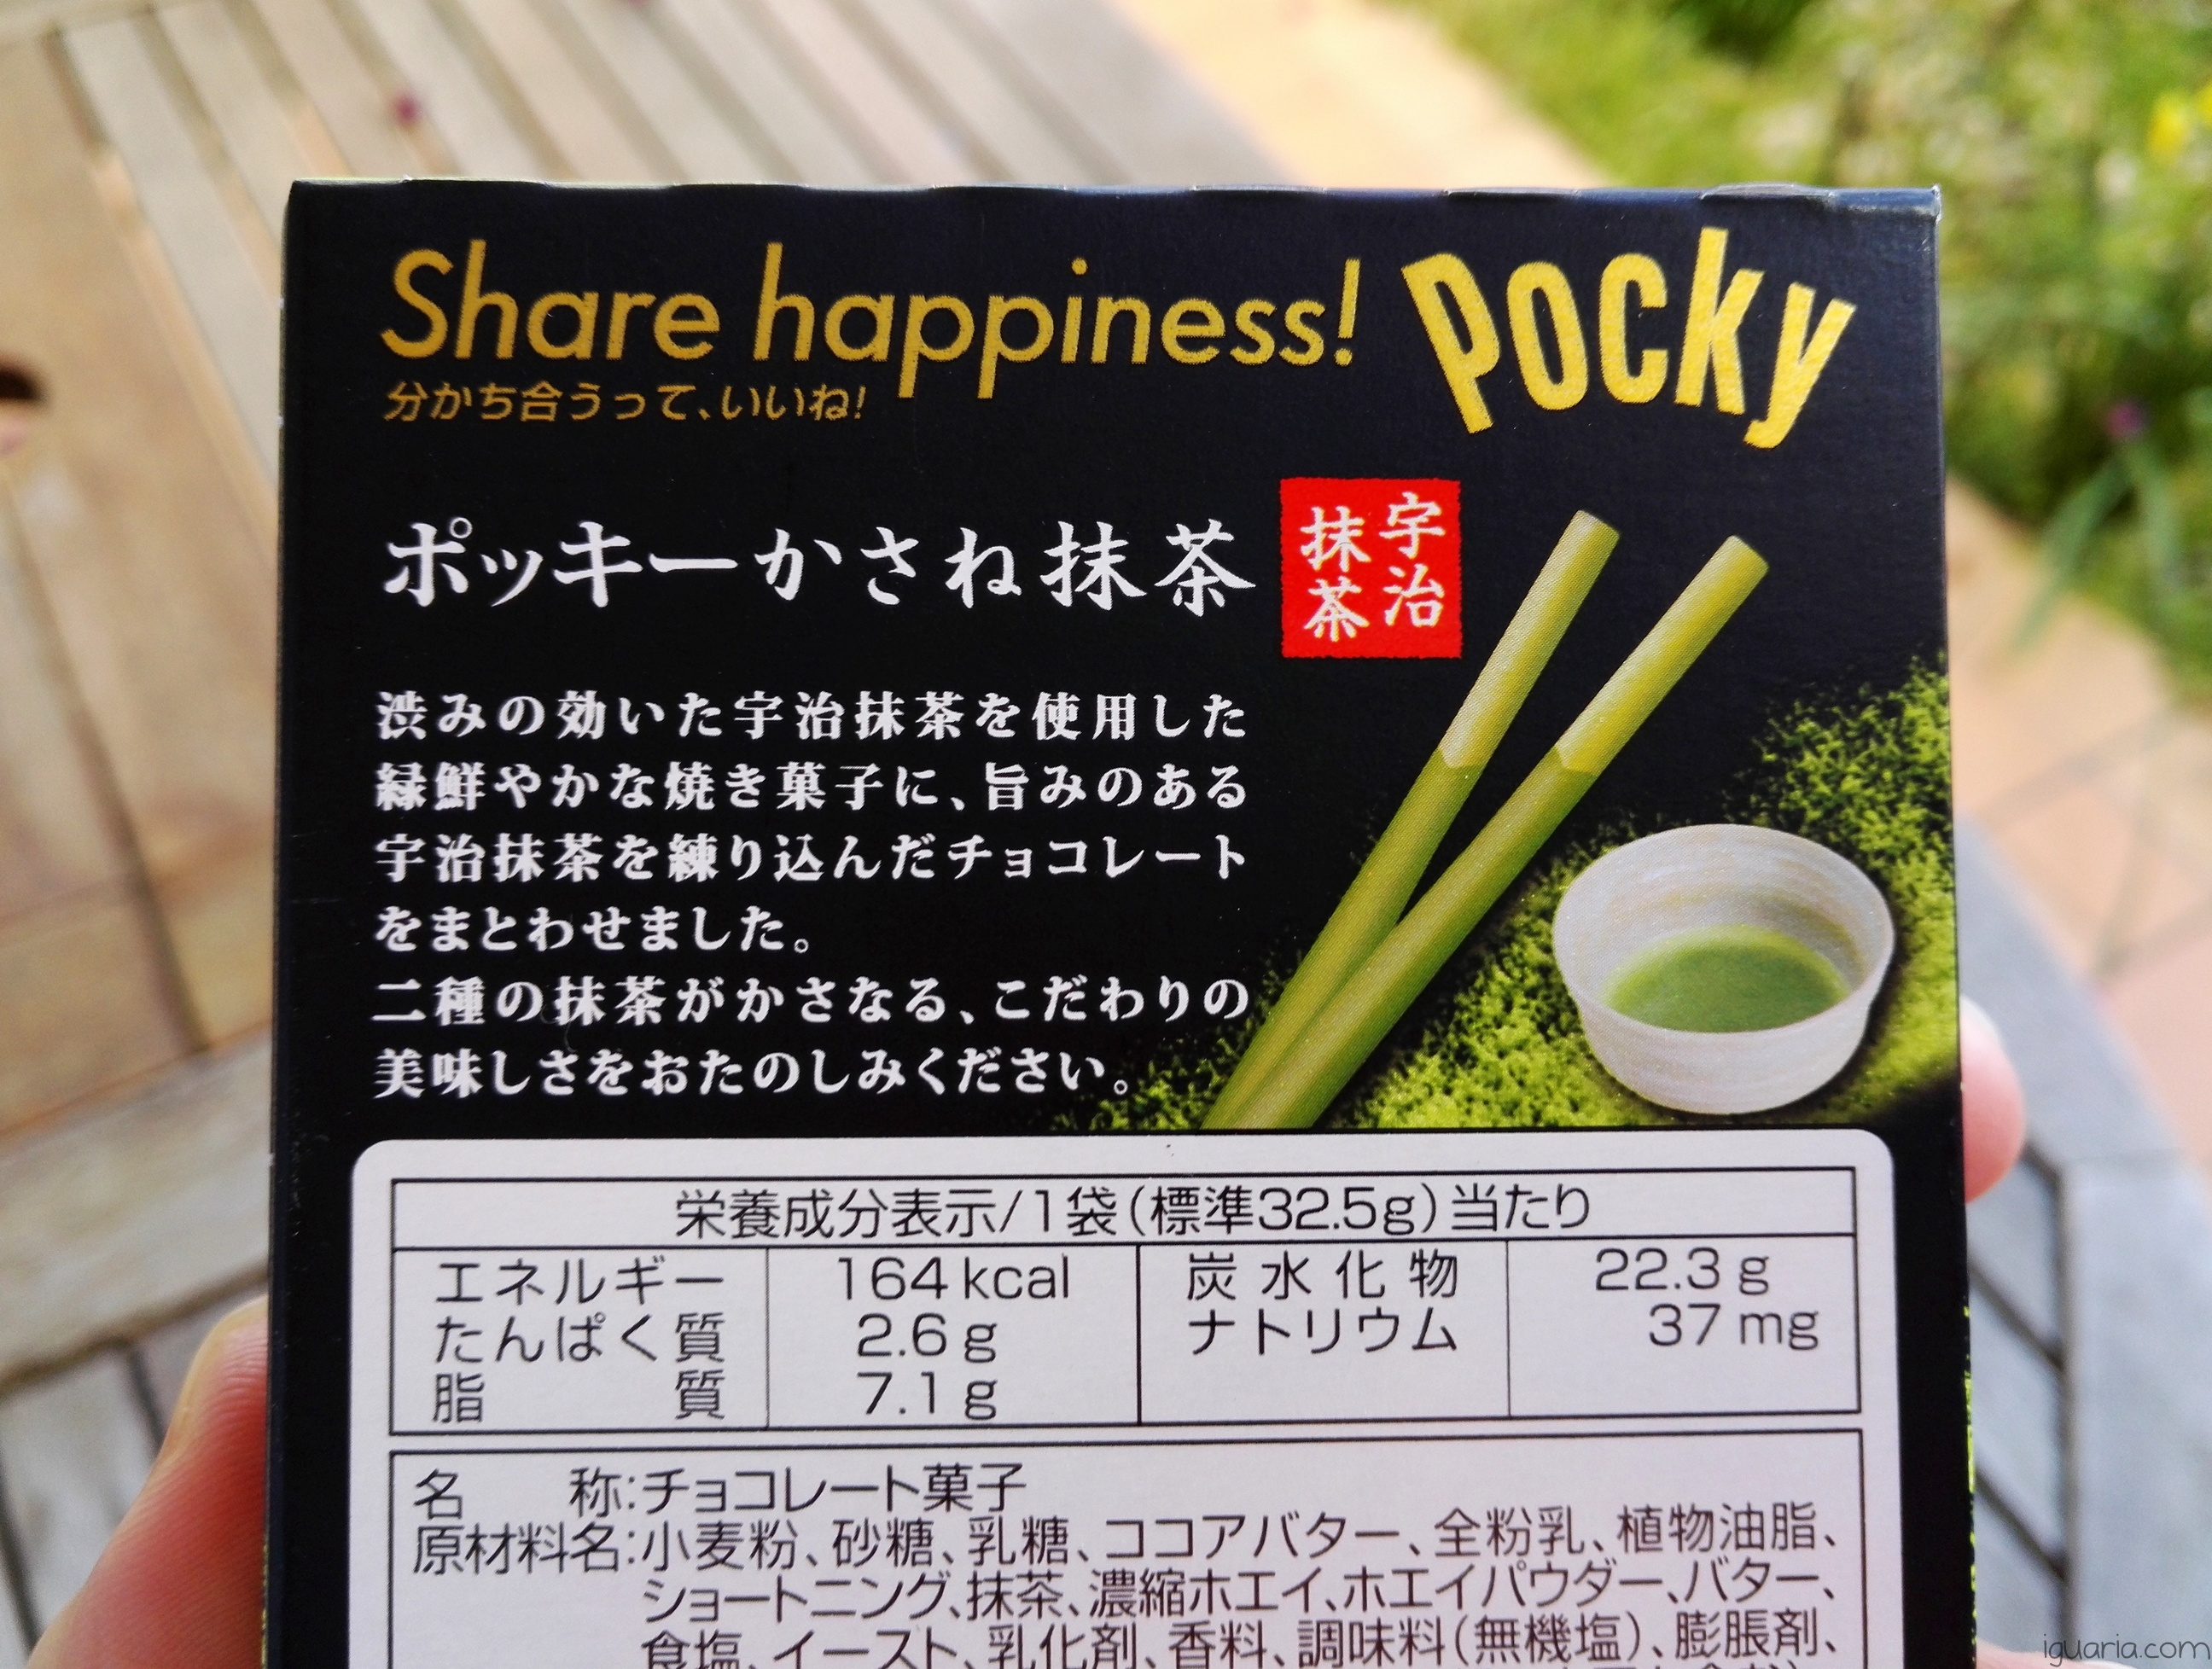 Iguaria_Ingredientes-Pocky-de-Matcha